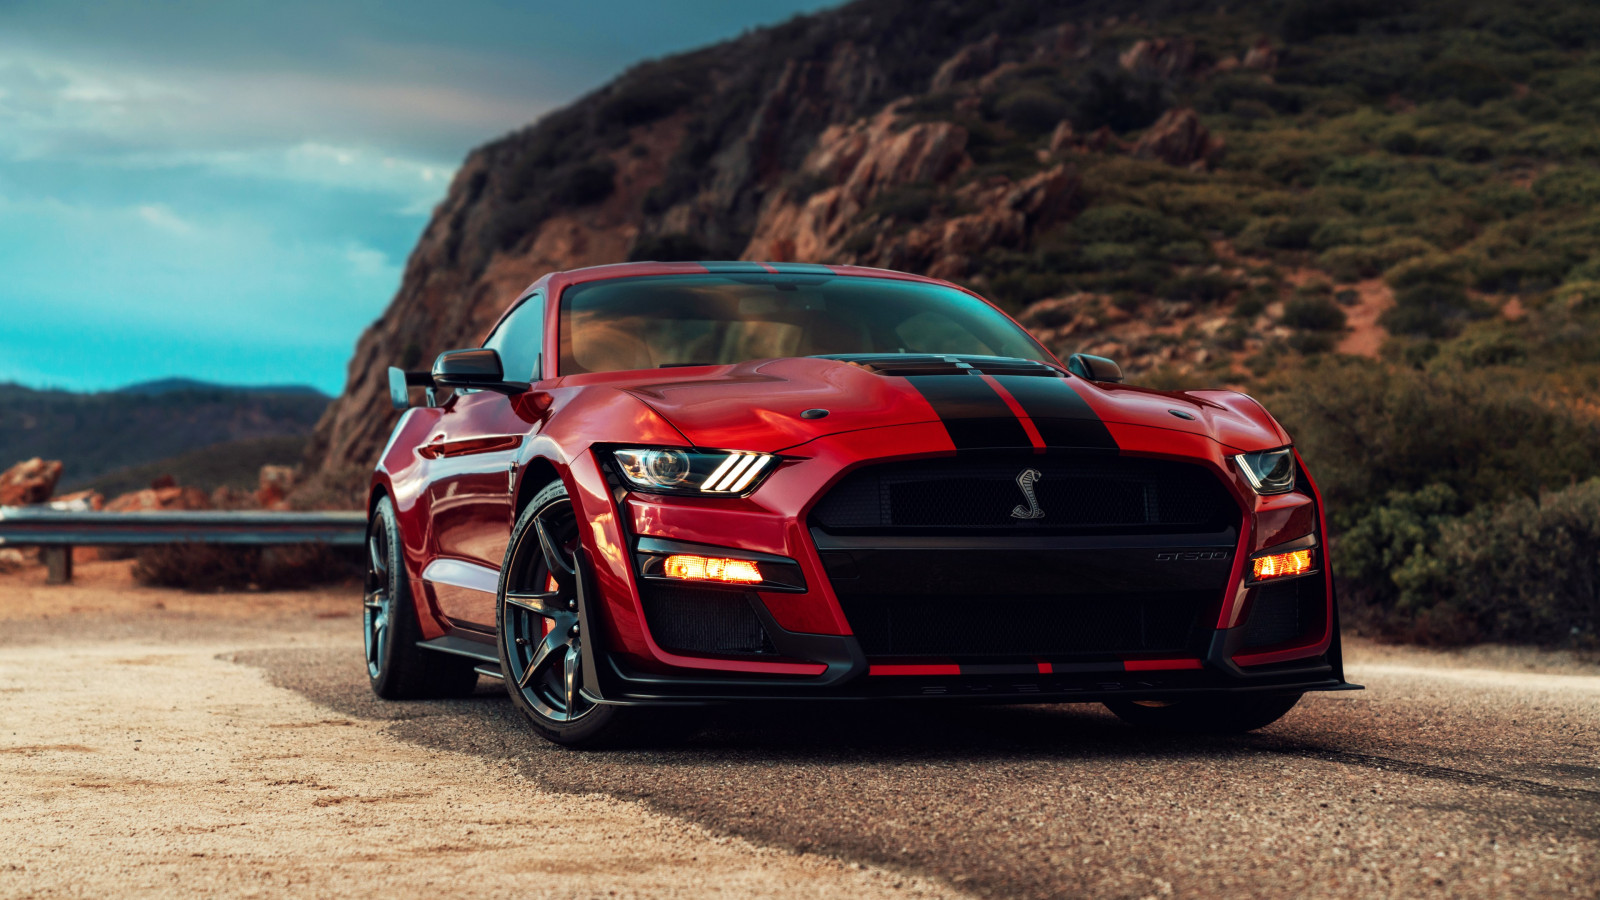 Ford Mustang Shelby GT500 wallpaper 1600x900